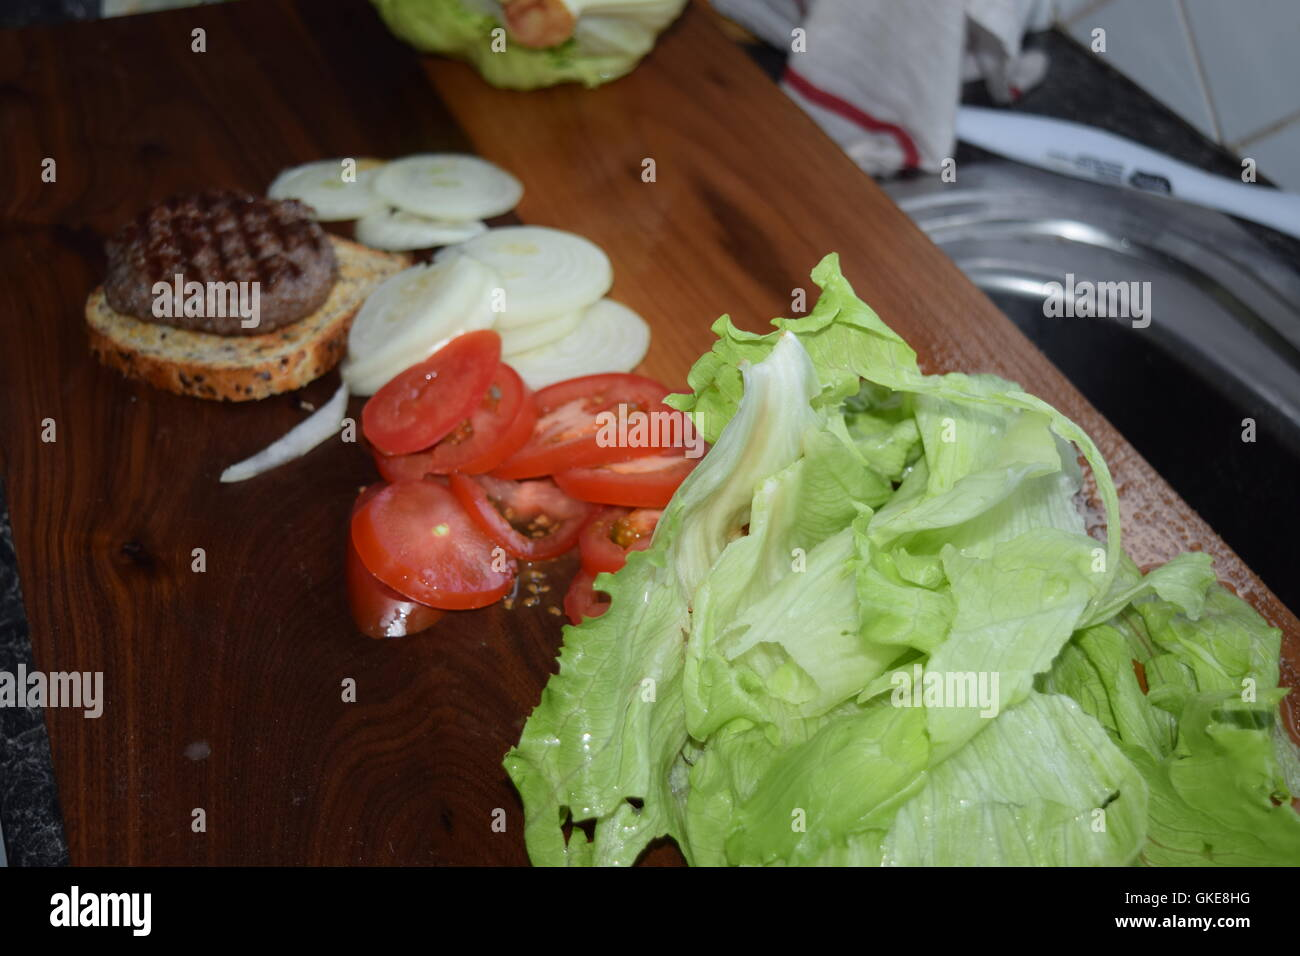 Vegetables with a Hamburger on Bread Stock Photo